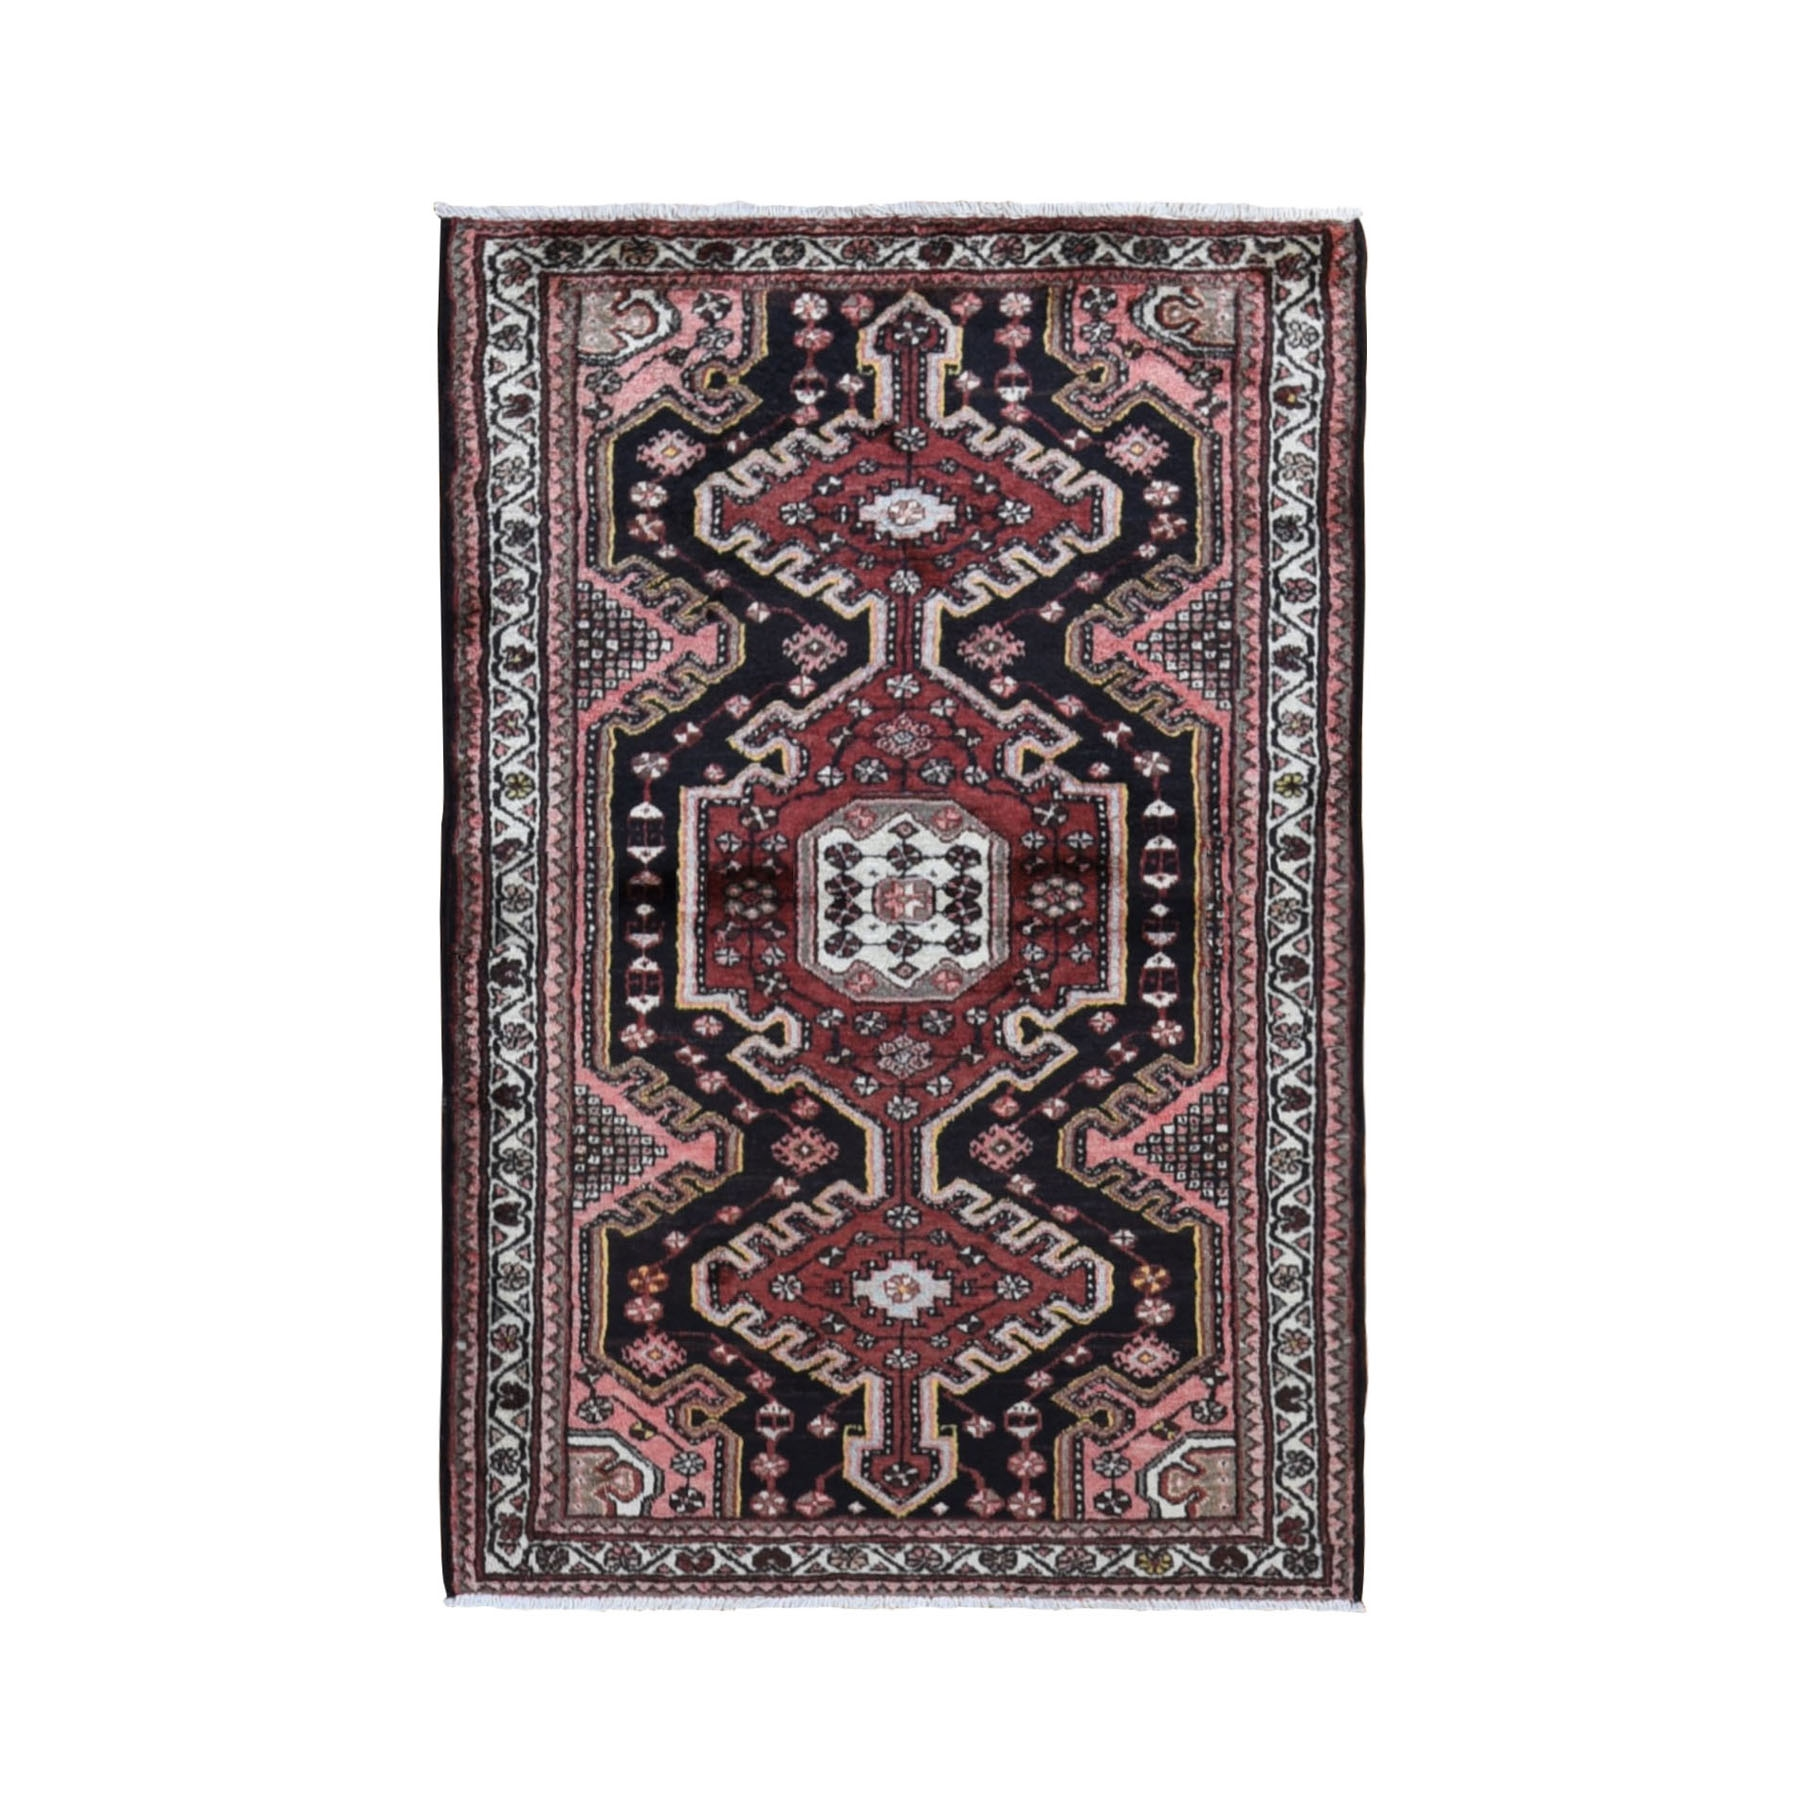 "3'5""x5'2"" Black Vintage Persian Hamadan Pure Wool Hand Knotted Bohemian Rug"